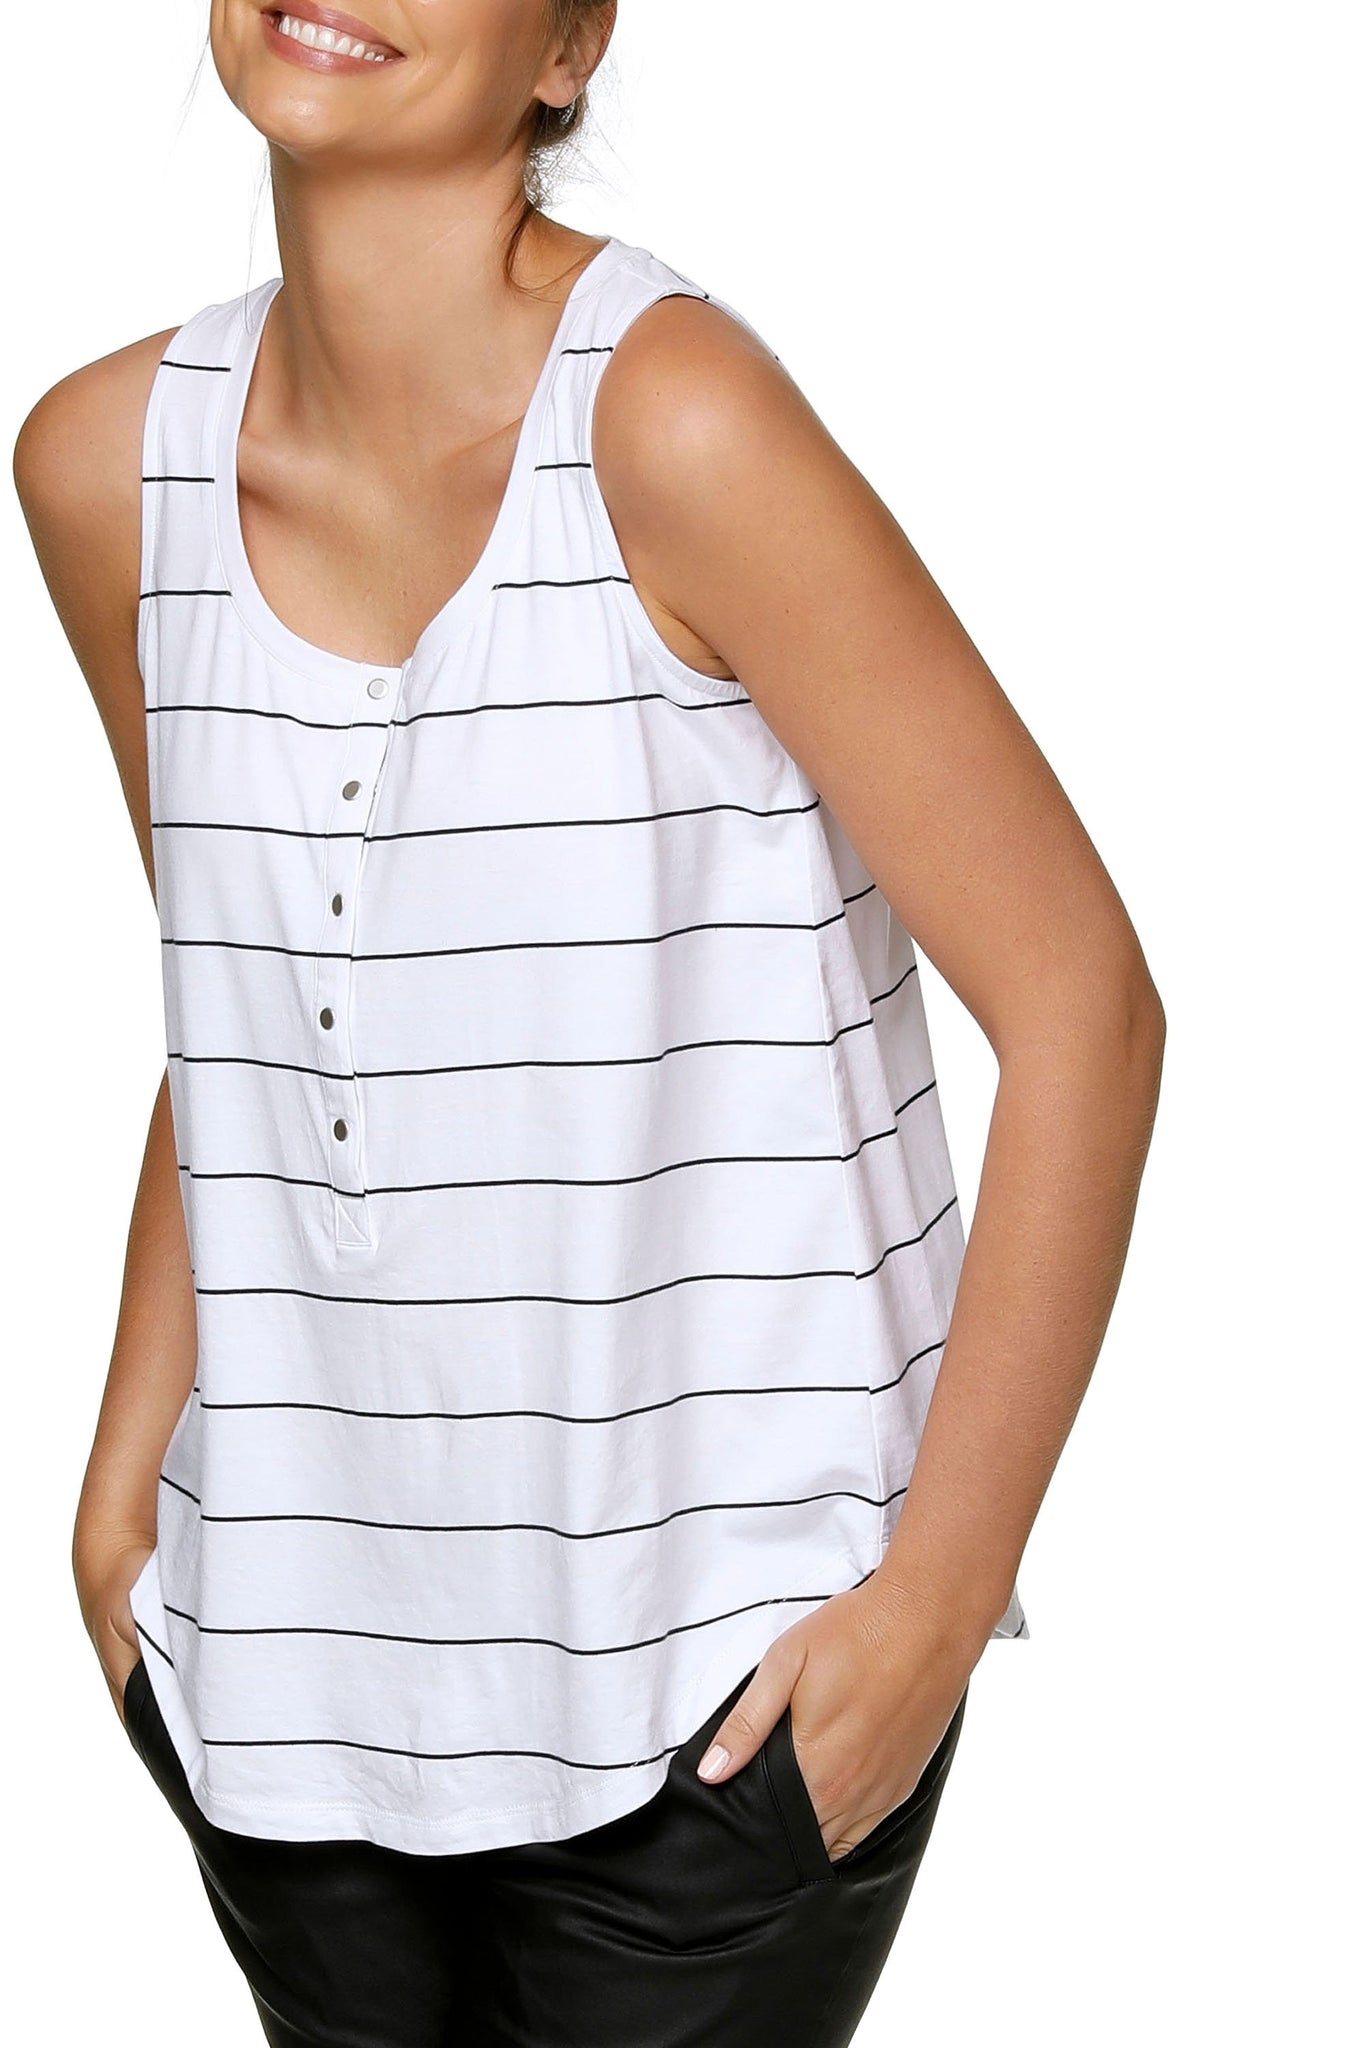 Maternity + Nursing Tank Top - White Stripe 9